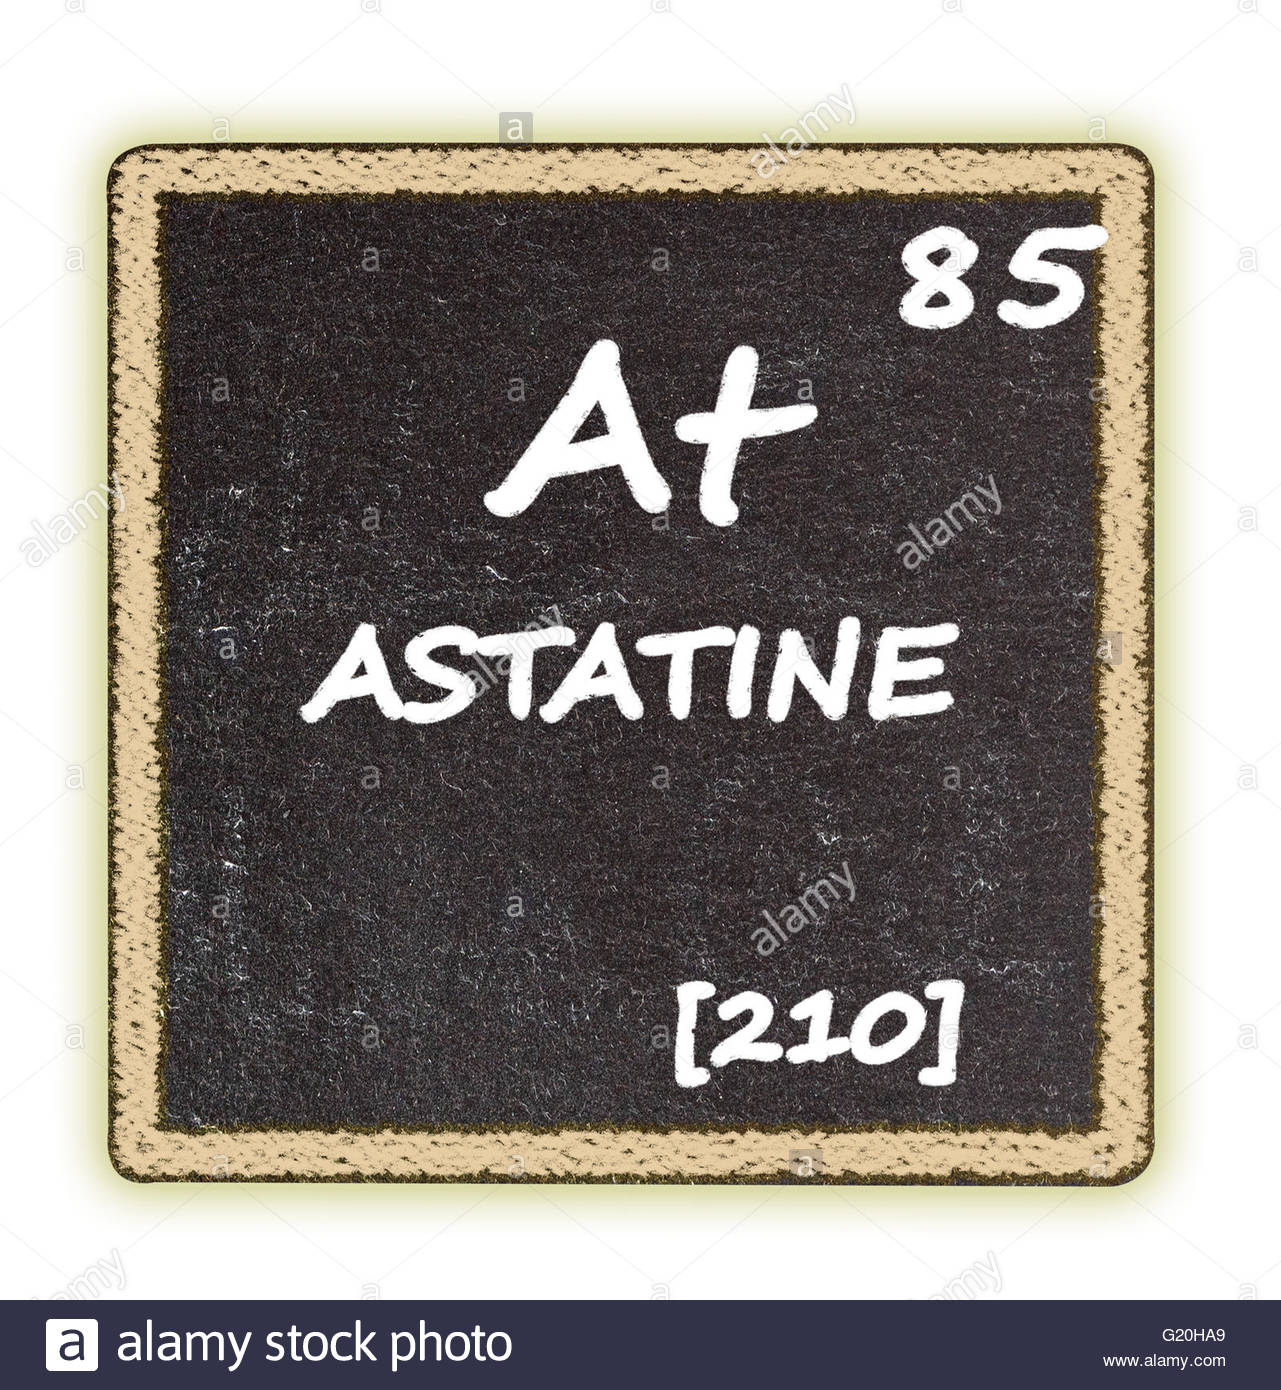 Astatine details from the periodic table stock photo royalty astatine details from the periodic table gamestrikefo Gallery